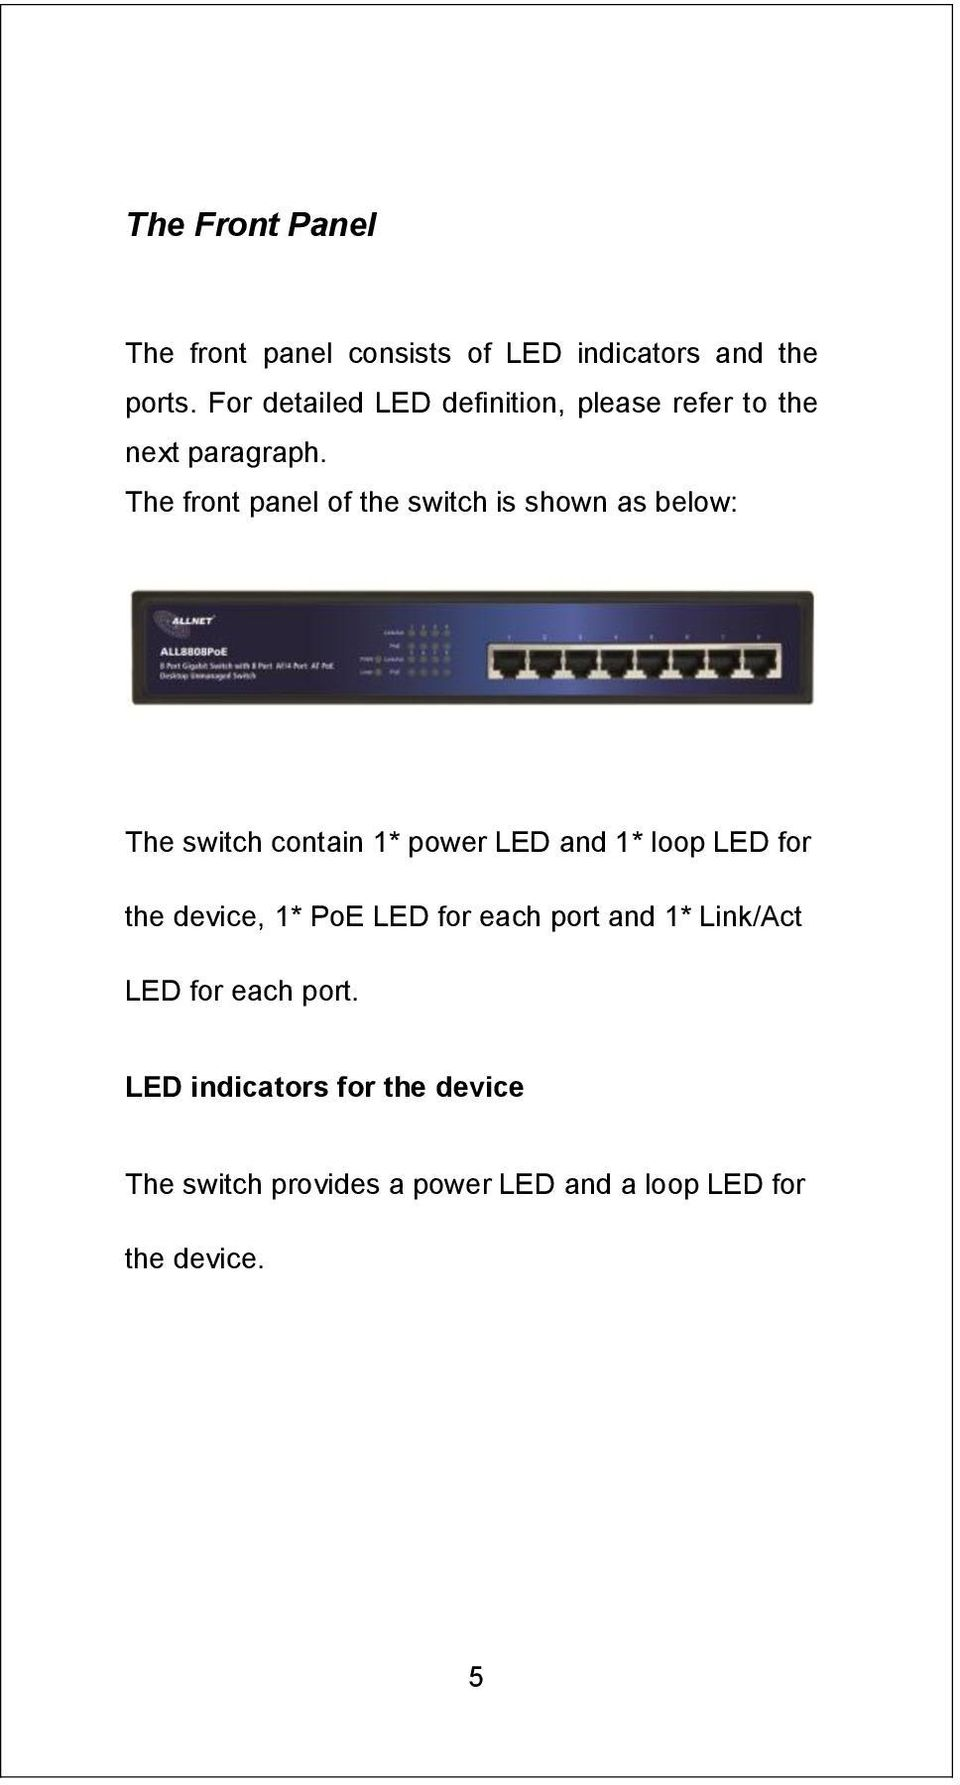 The front panel of the switch is shown as below: LED Definition The switch contain 1* power LED and 1*